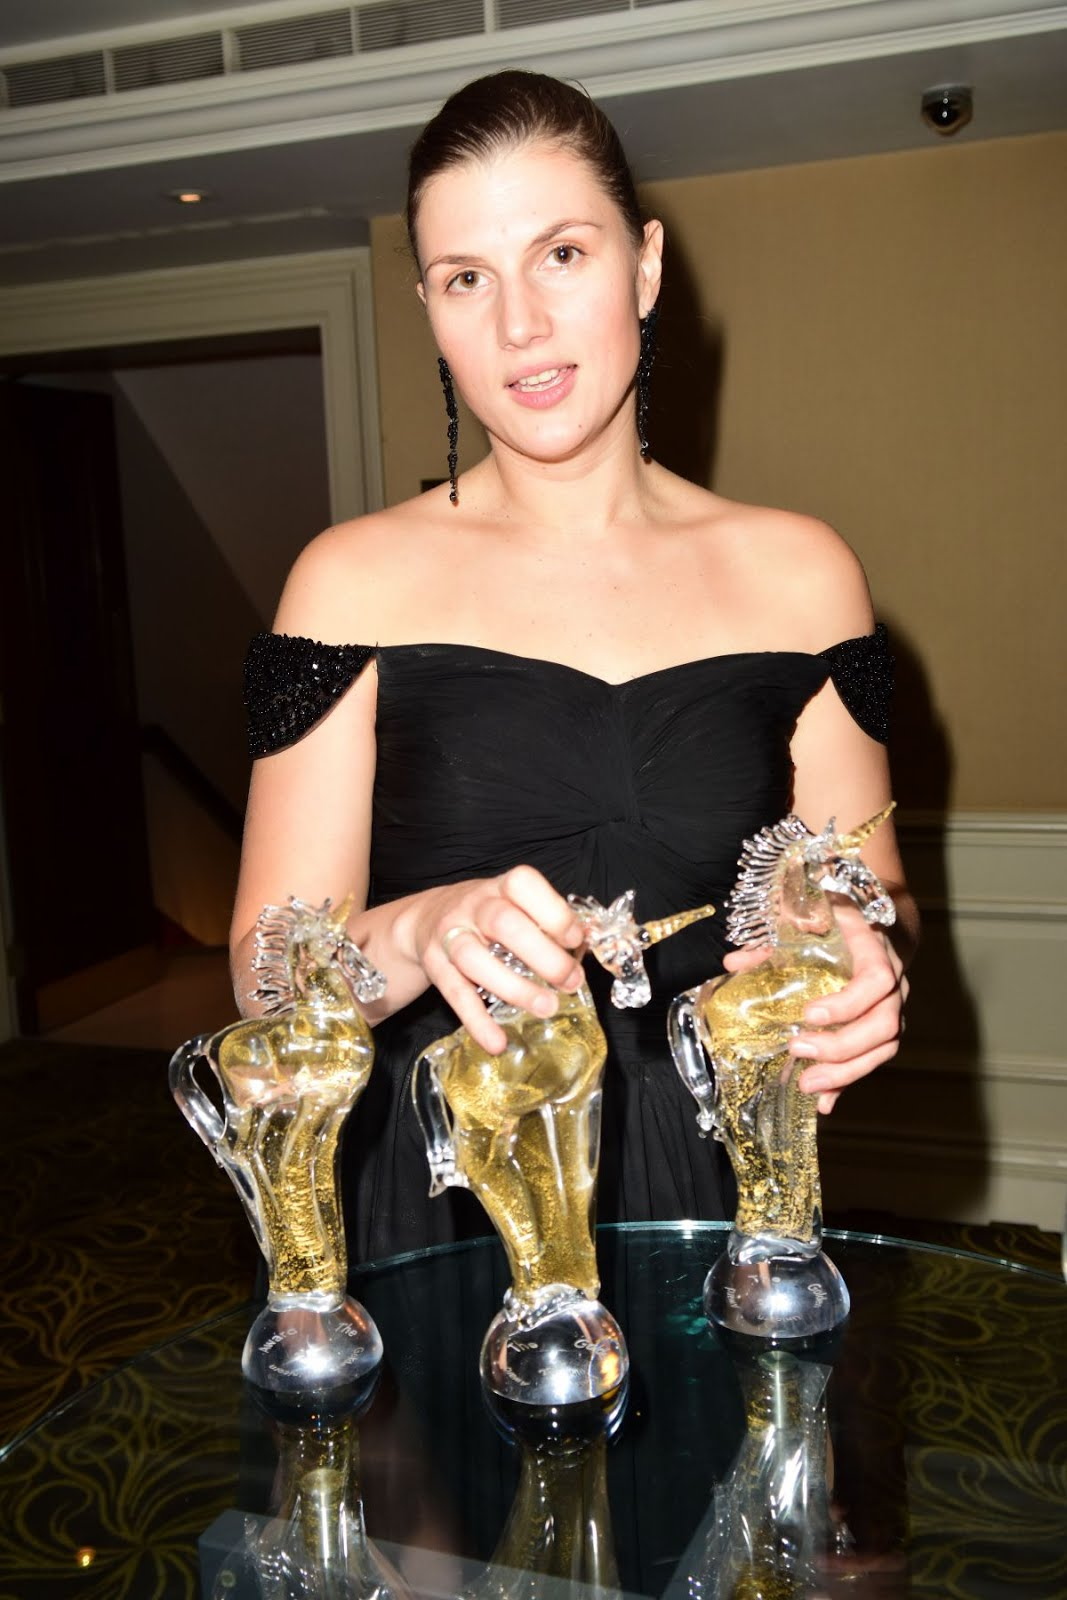 Photos of Maryana Spivak at 2nd Golden Unicorn Awards in London